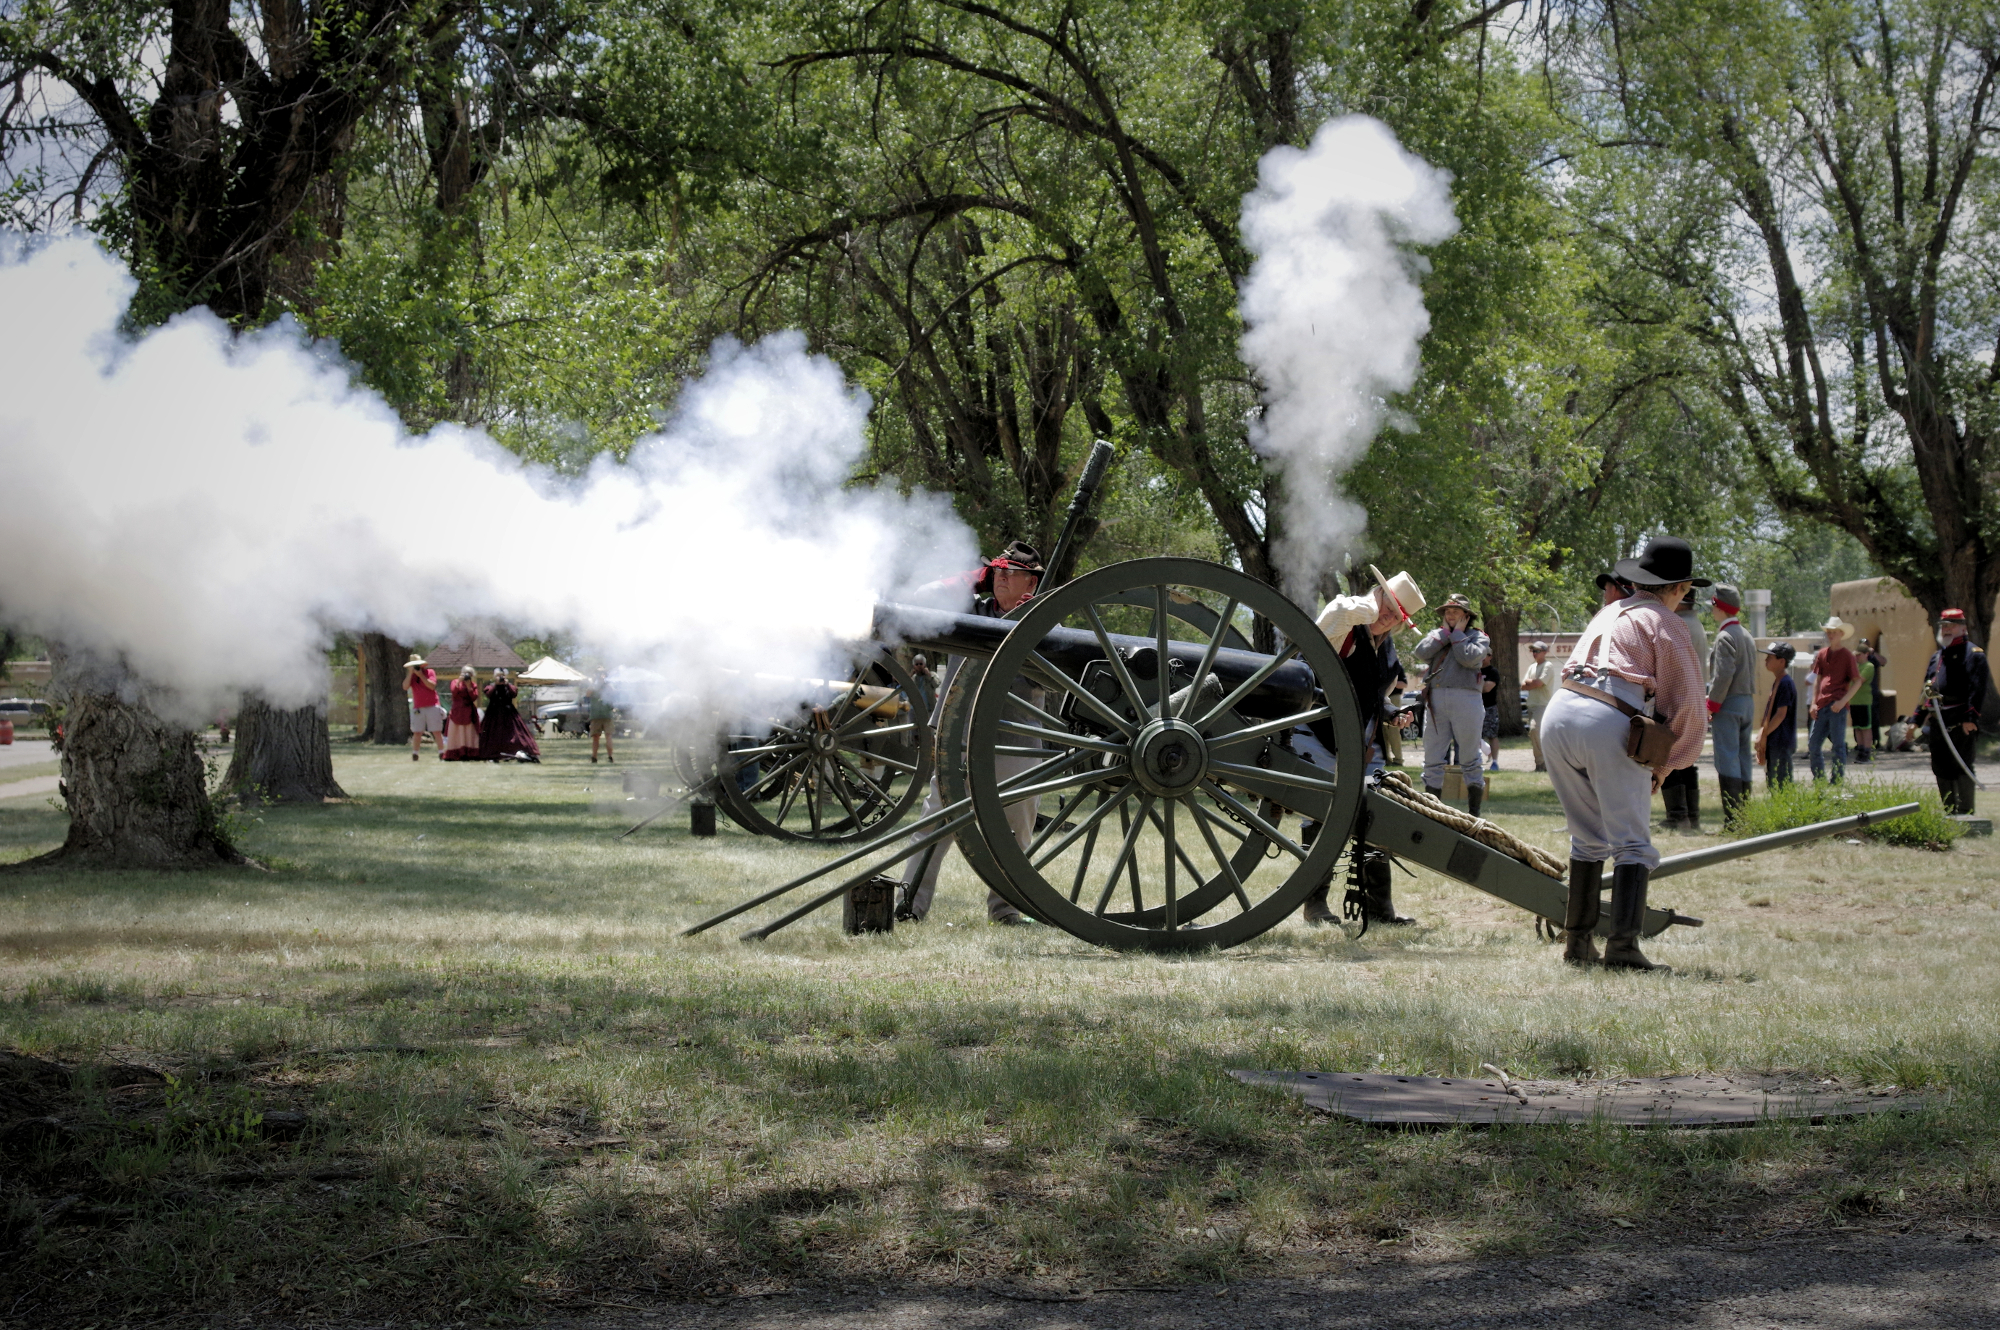 Fort Stanton State Monument, in Lincoln County, attracts many tourists through reenactments and educational programs